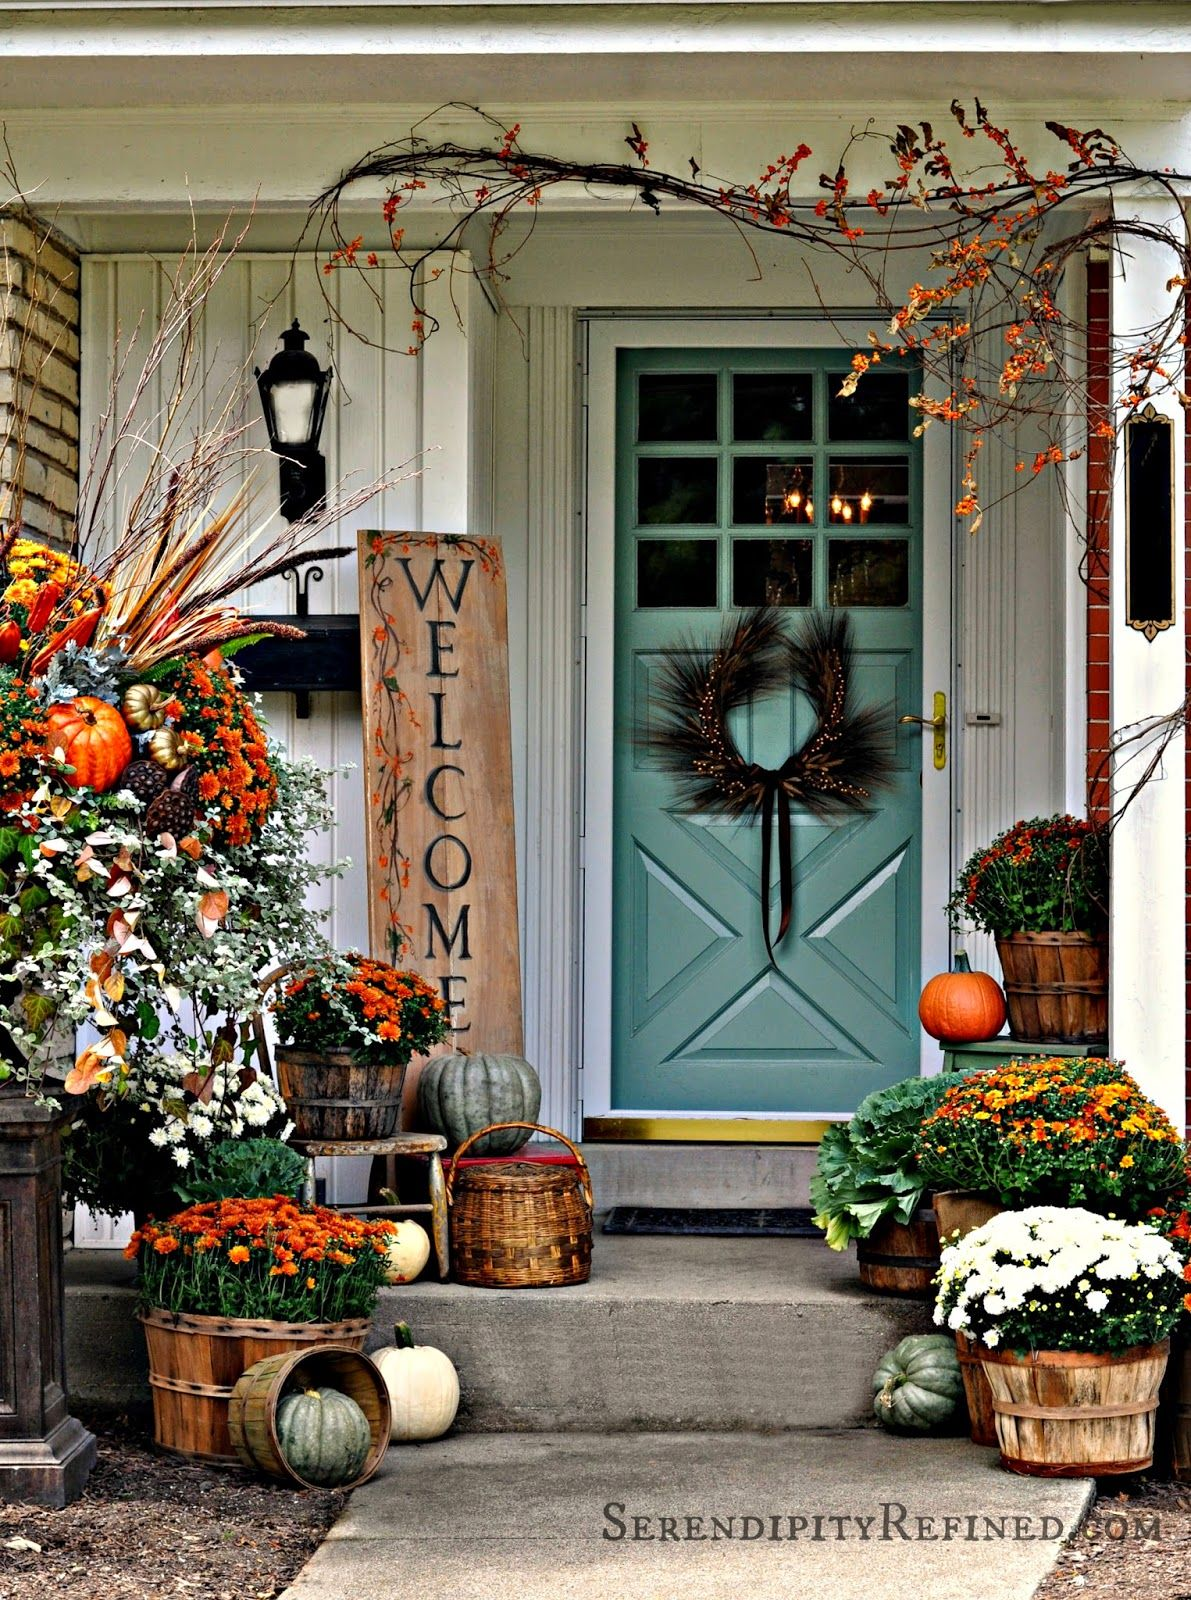 serendipity refined: fall harvest porch decor with reclaimed wood